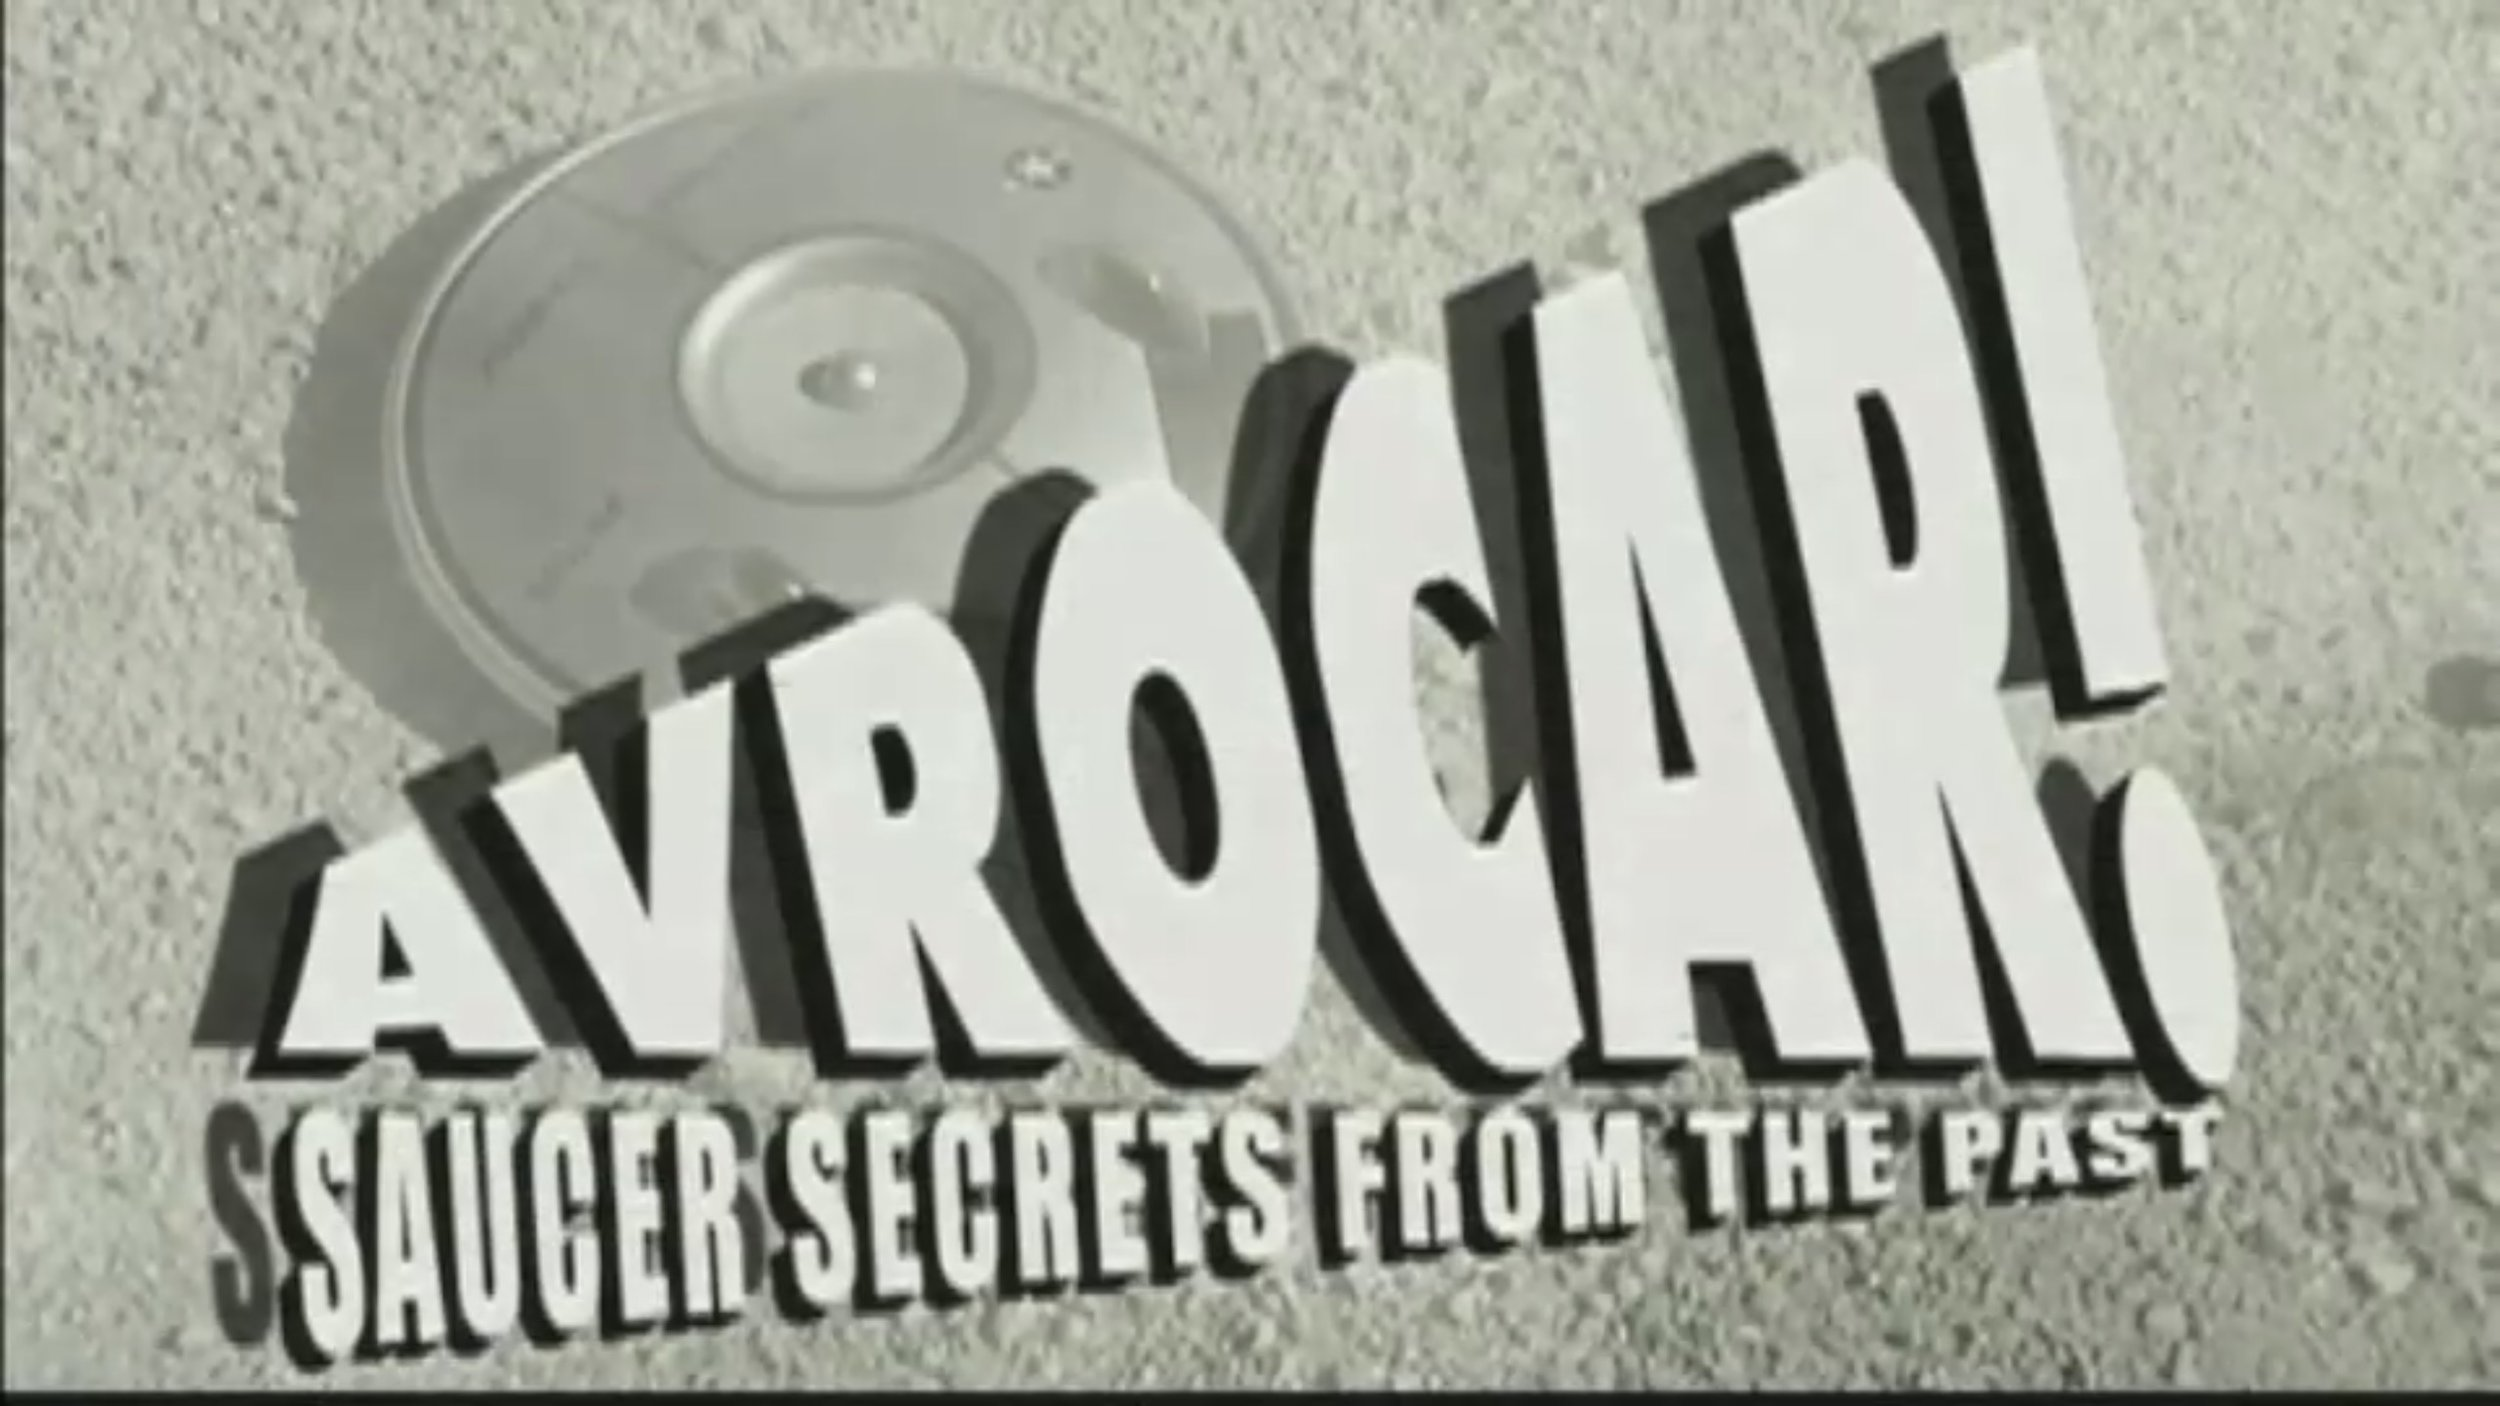 Avrocar! Saucer Secrets - A quirky look at the world's first man-made 'flying saucer' built in the 1950's. American defence poured millions into project, spurred on by the dreams and aspirations of engineer John Frost. Near disastrous test flight footage combined with hilarious B movie clips make Avrocar a documentary that's truly out of this world.DunnMedia with MidCanada Entertainment for Discovery Channel